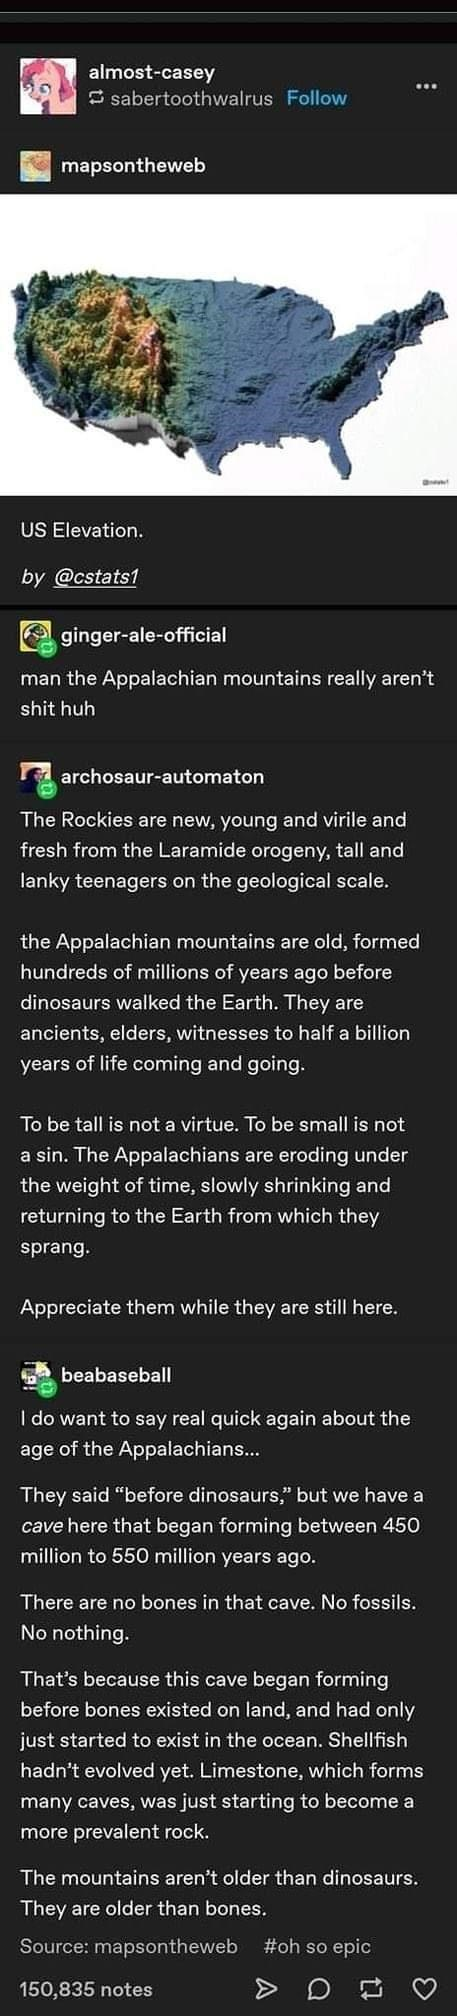 Font - almost-casey S sabertoothwalrus Follow mapsontheweb US Elevation. by @cstats1 O ginger-ale-official man the Appalachian mountains really aren't shit huh archosaur-automaton The Rockies are new, young and virile and fresh from the Laramide orogeny, tall and lanky teenagers on the geological scale. the Appalachian mountains are old, formed hundreds of millions of years ago before dinosaurs walked the Earth. They are ancients, elders, witnesses to half a billion years of life coming and goin